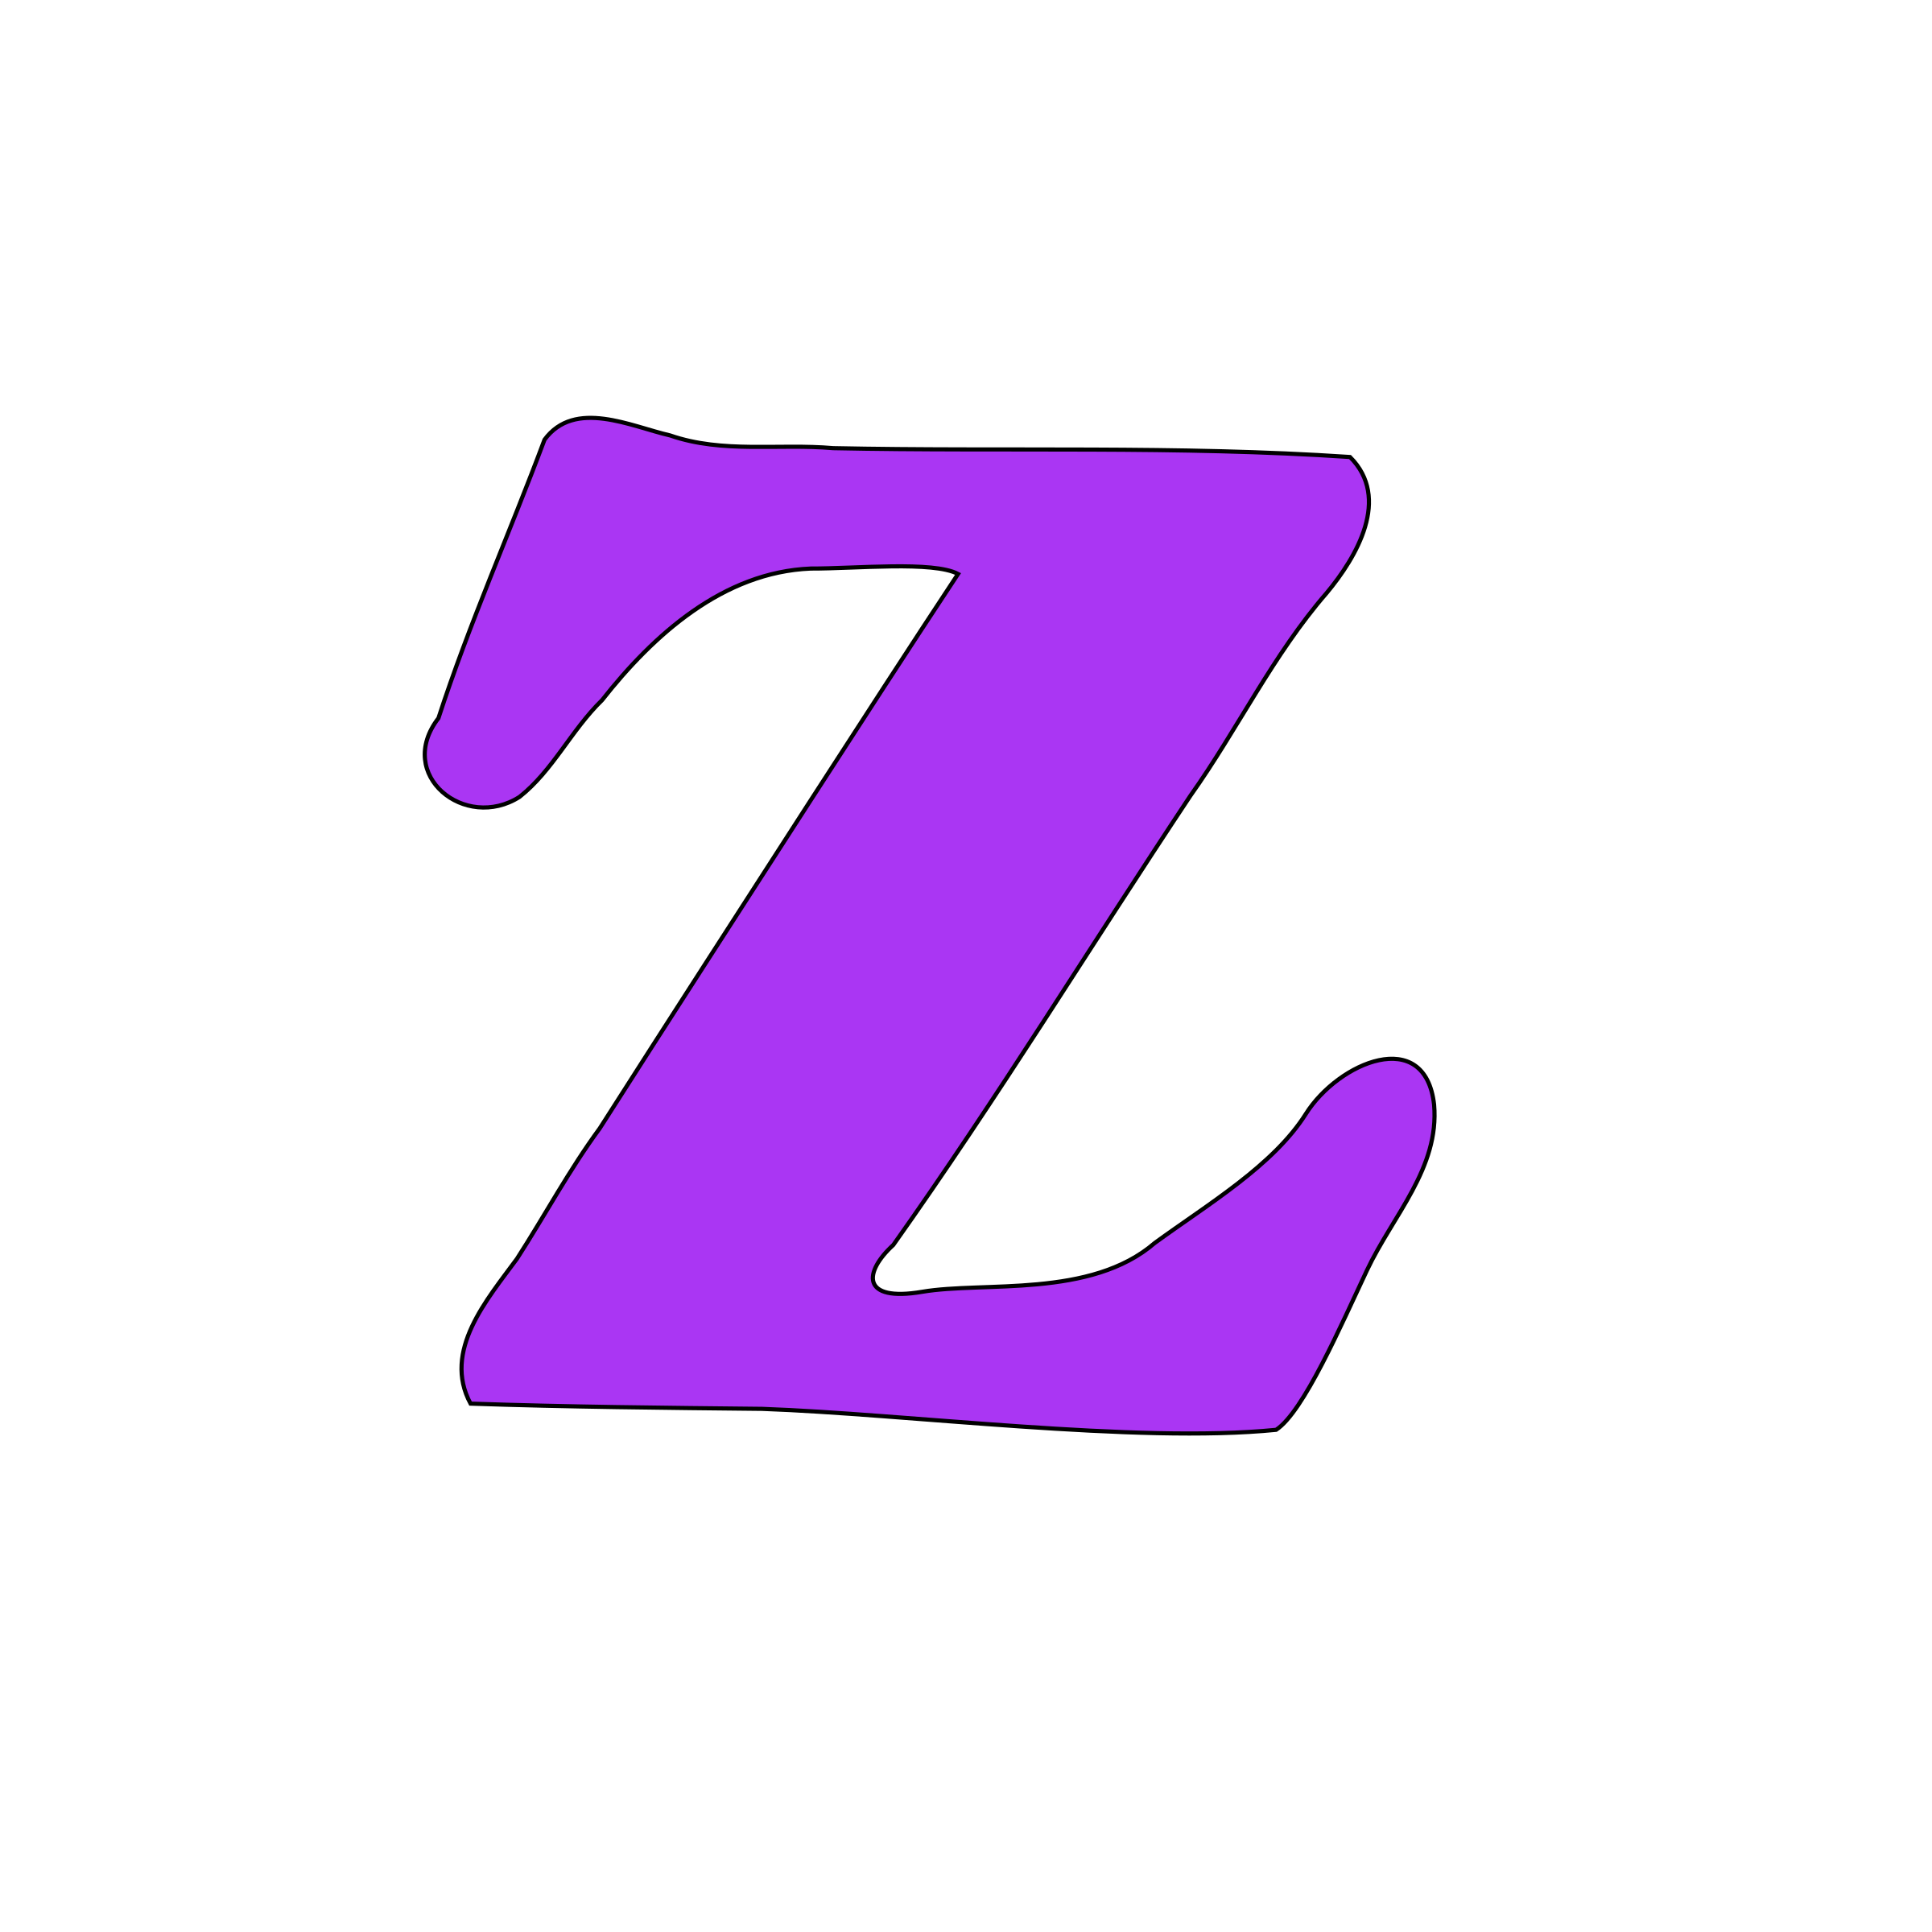 Lowercase z by tuamora